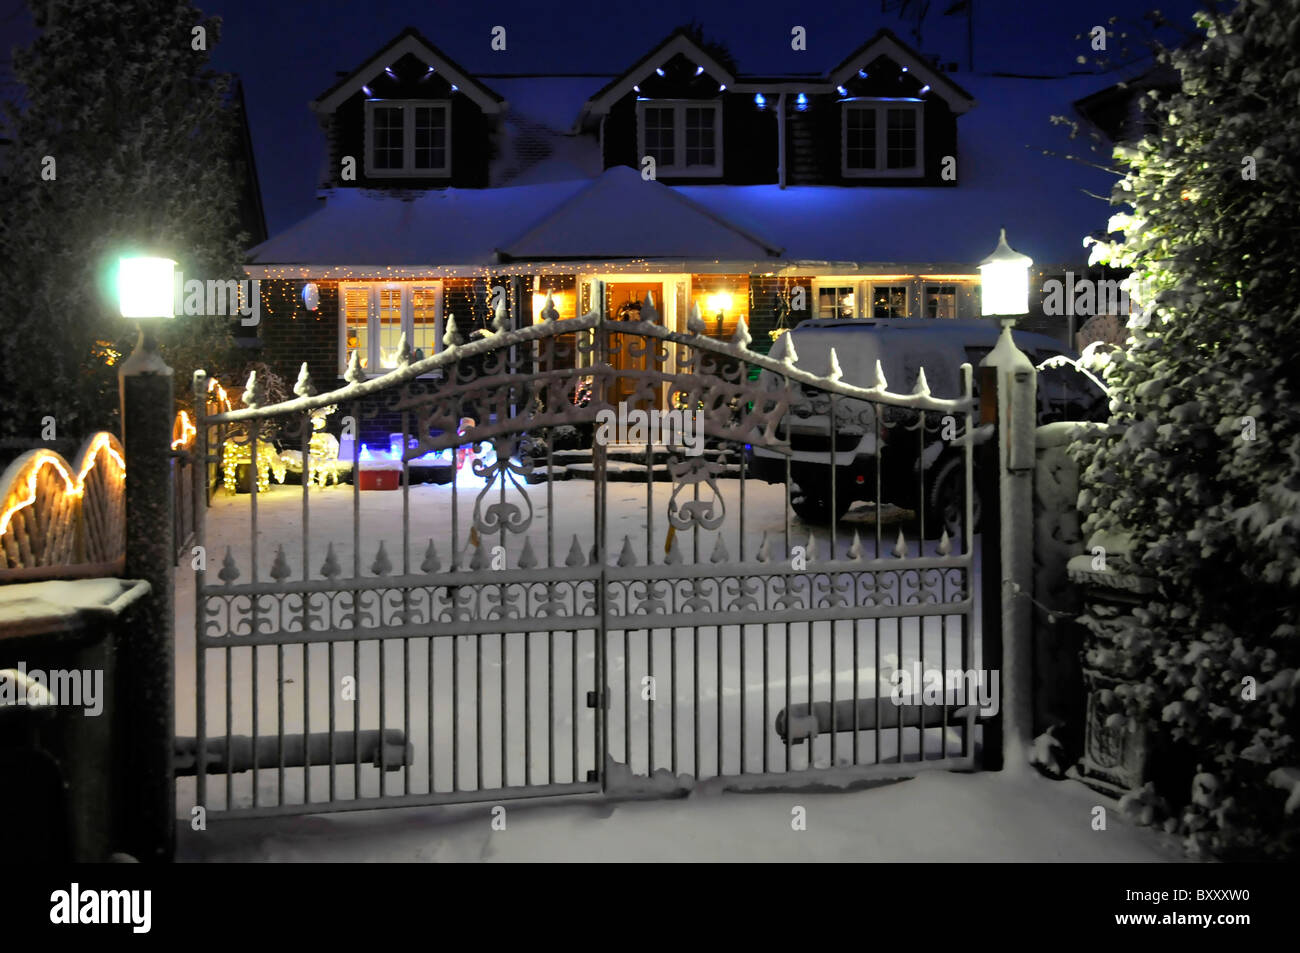 Snow and gated house with Christmas lights - Stock Image